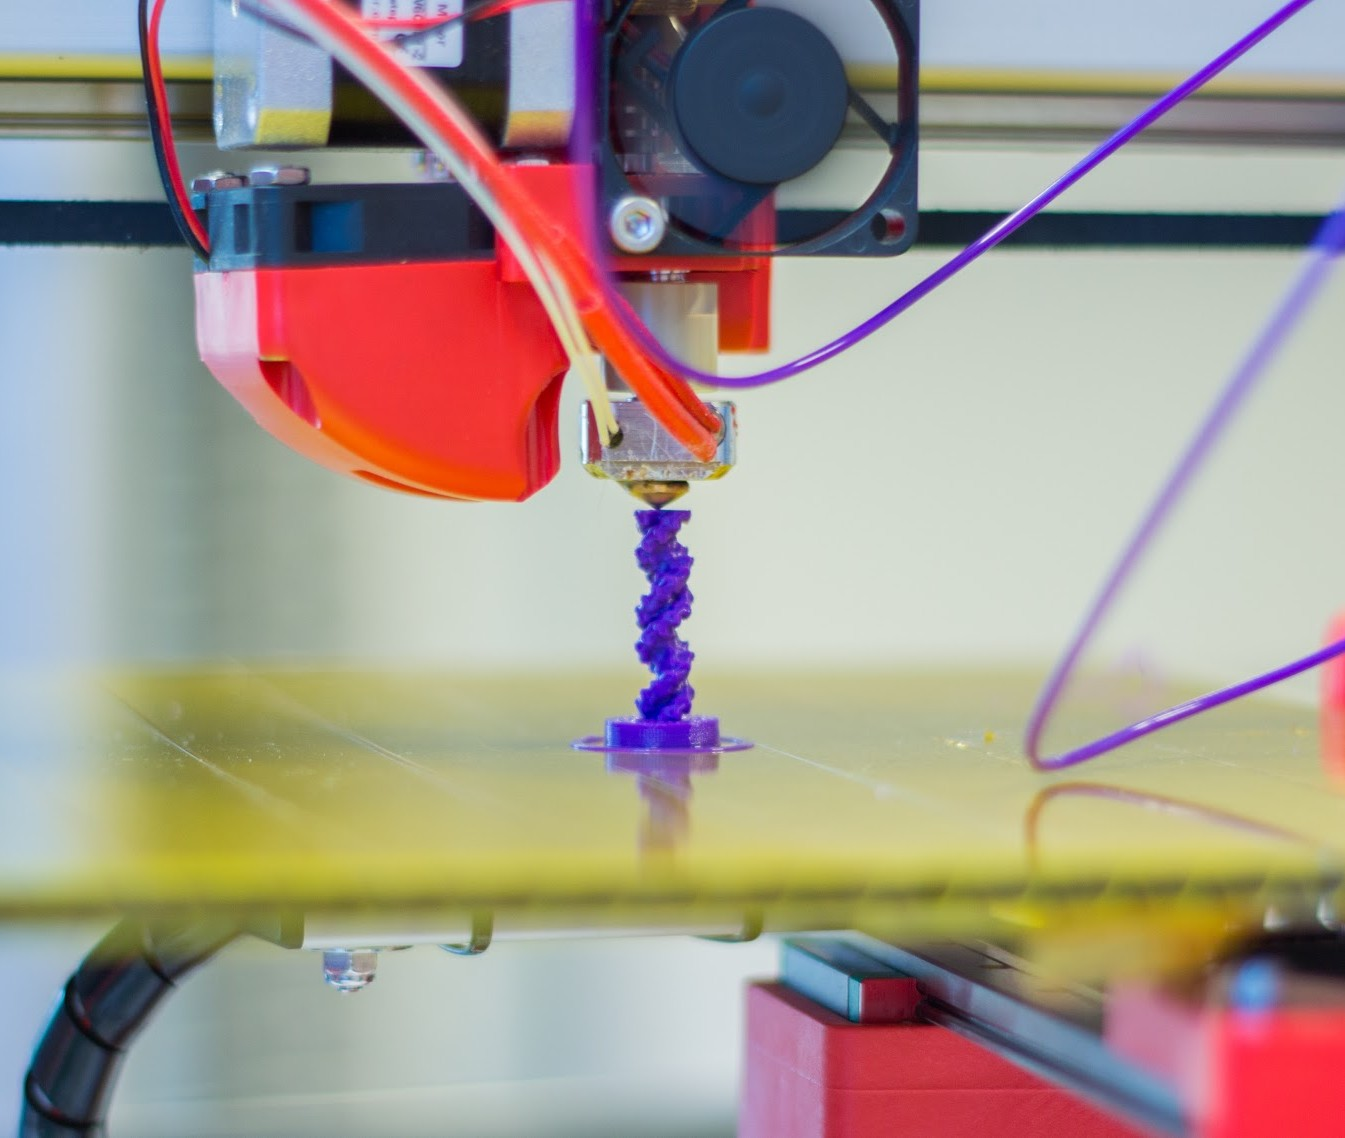 Photo of a 3D pinter printing something purple.